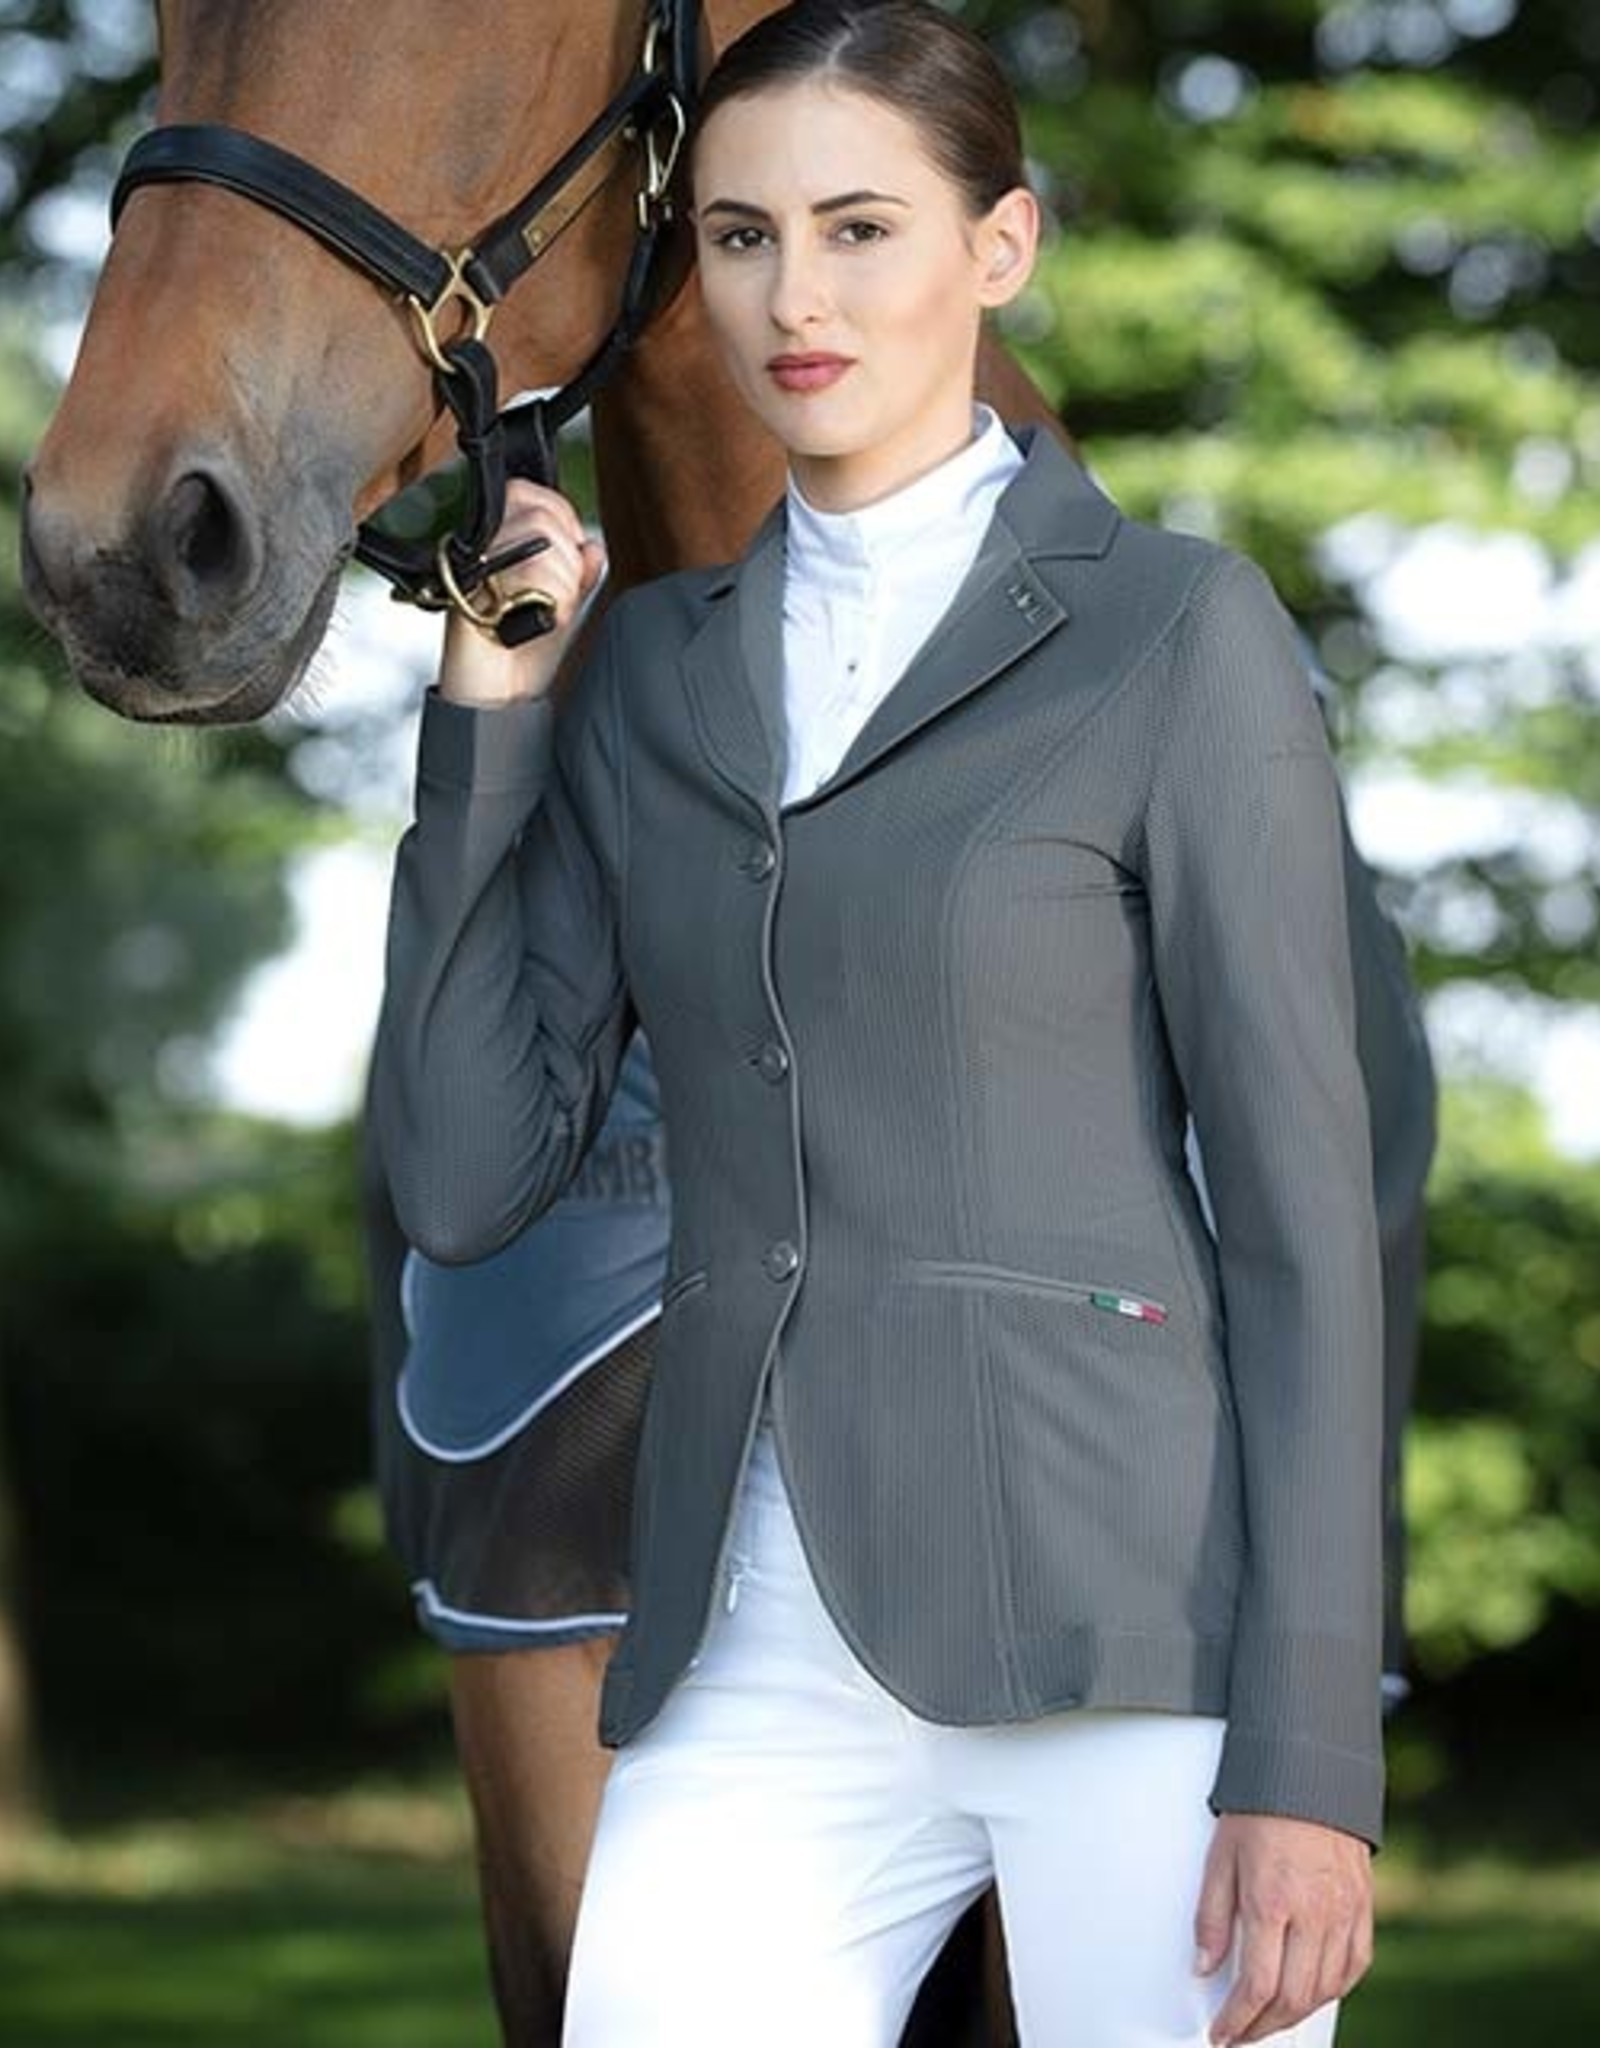 HORSEWARE IRELAND AA MOTION LITE JACKET